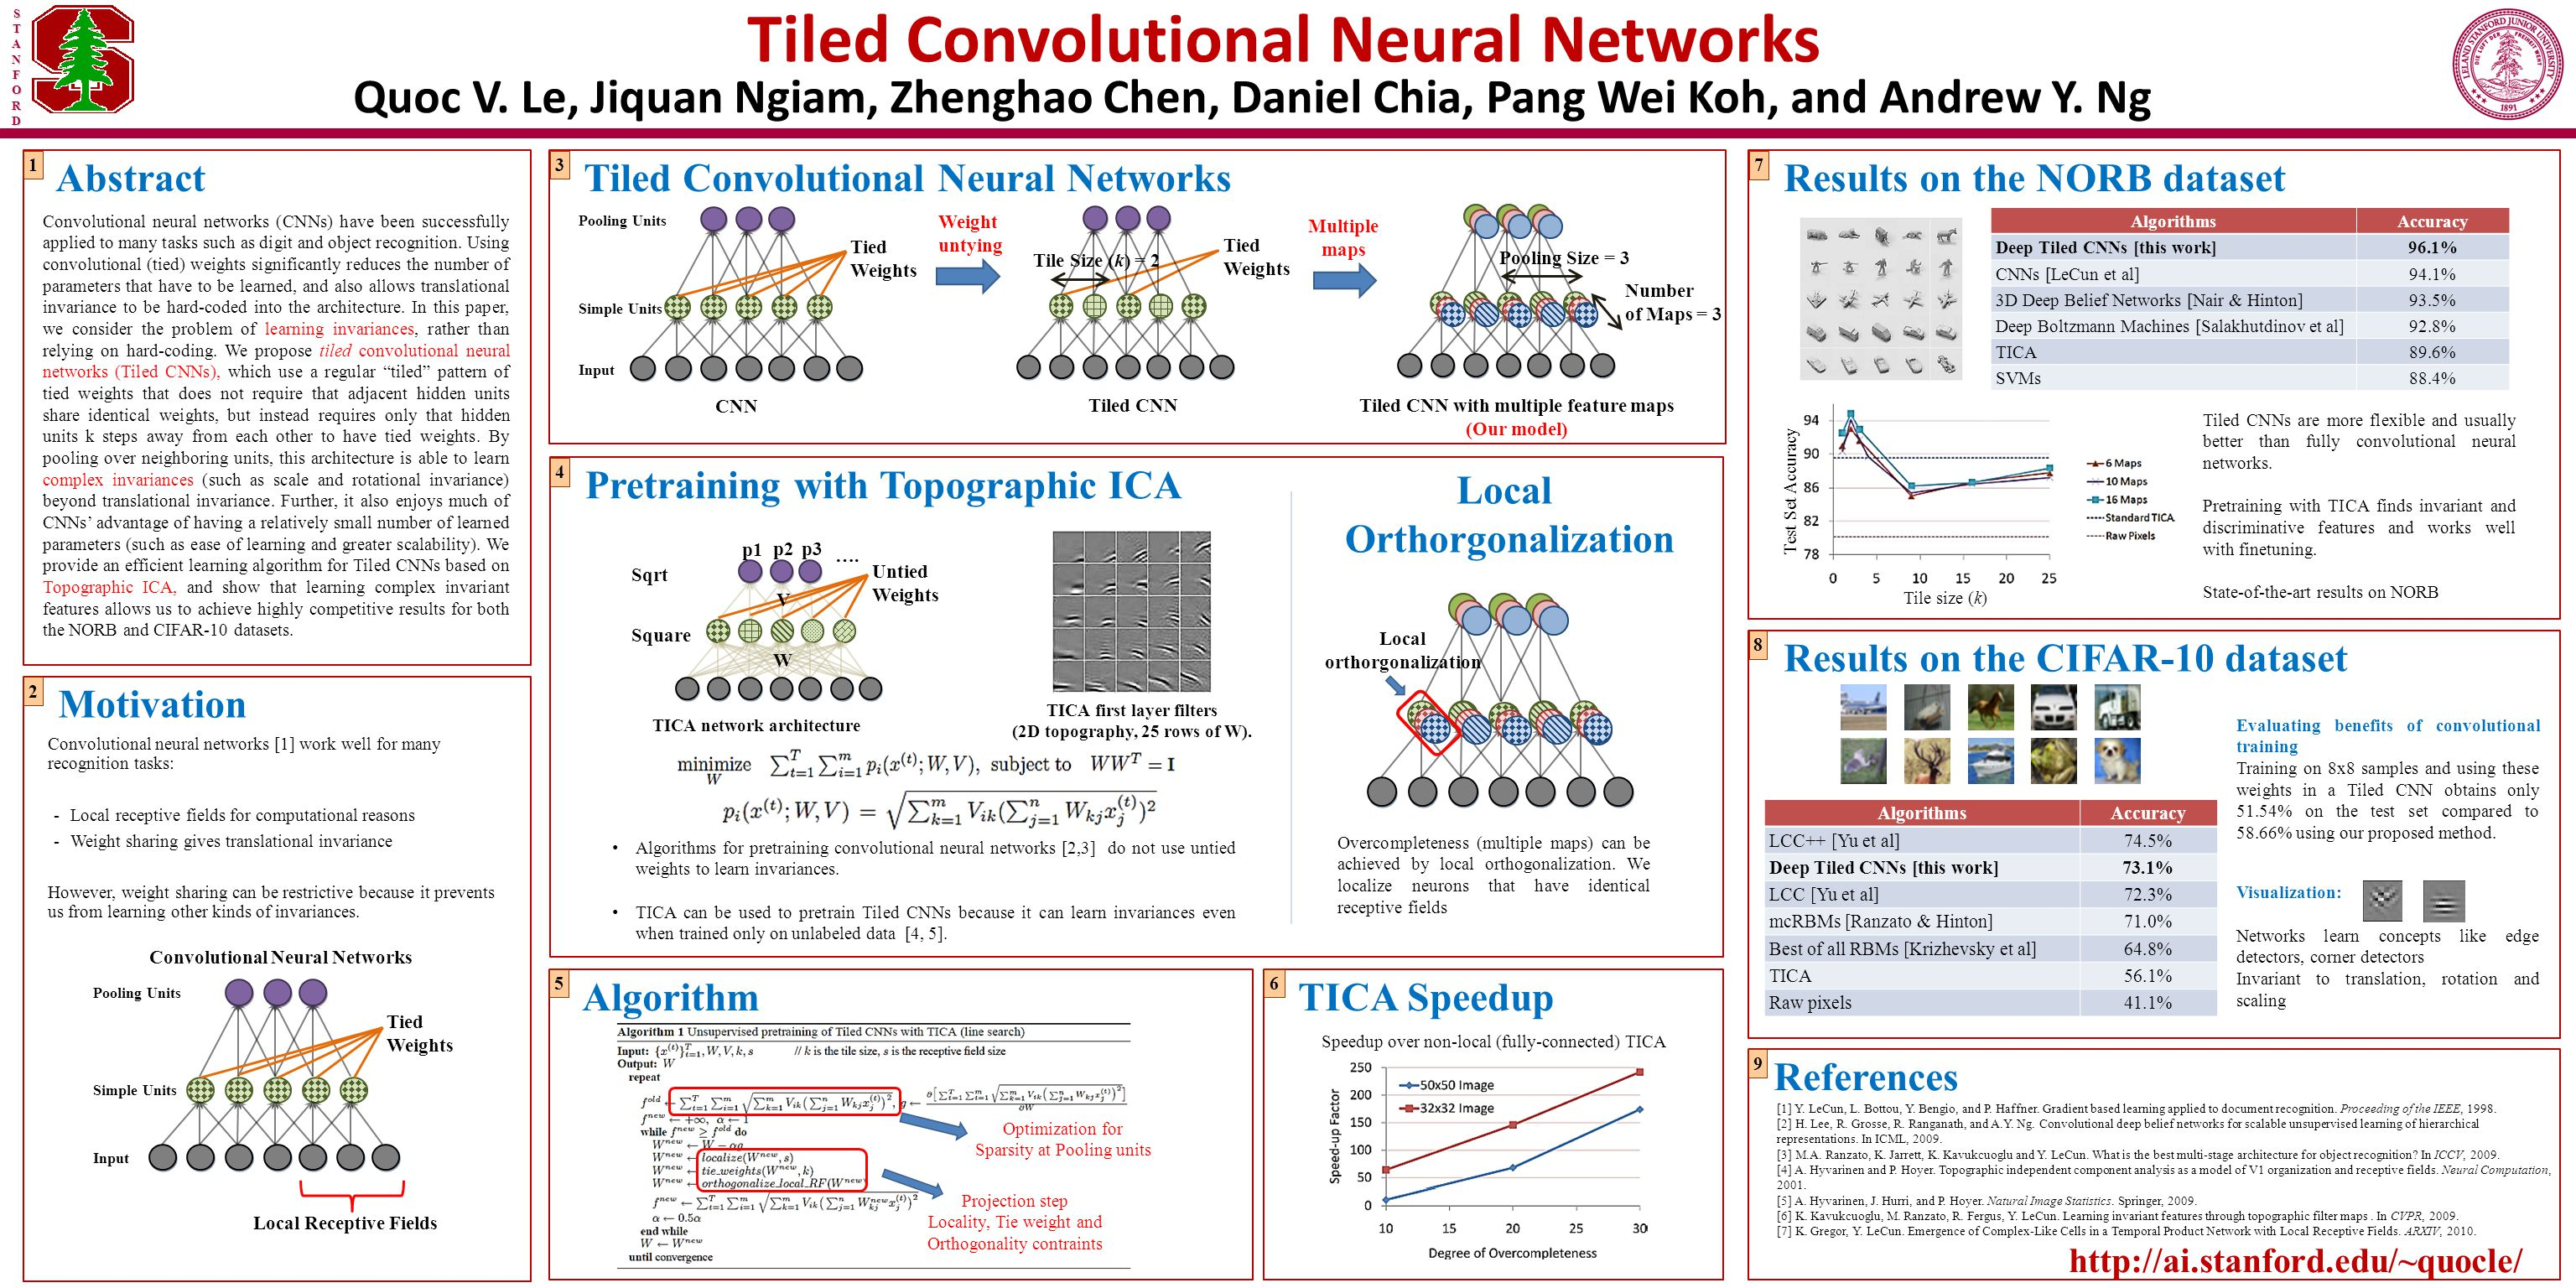 Tiled Convolutional Neural Networks TICA Speedup Results on the CIFAR-10 dataset Motivation Pretraining with Topographic ICA References [1] Y.